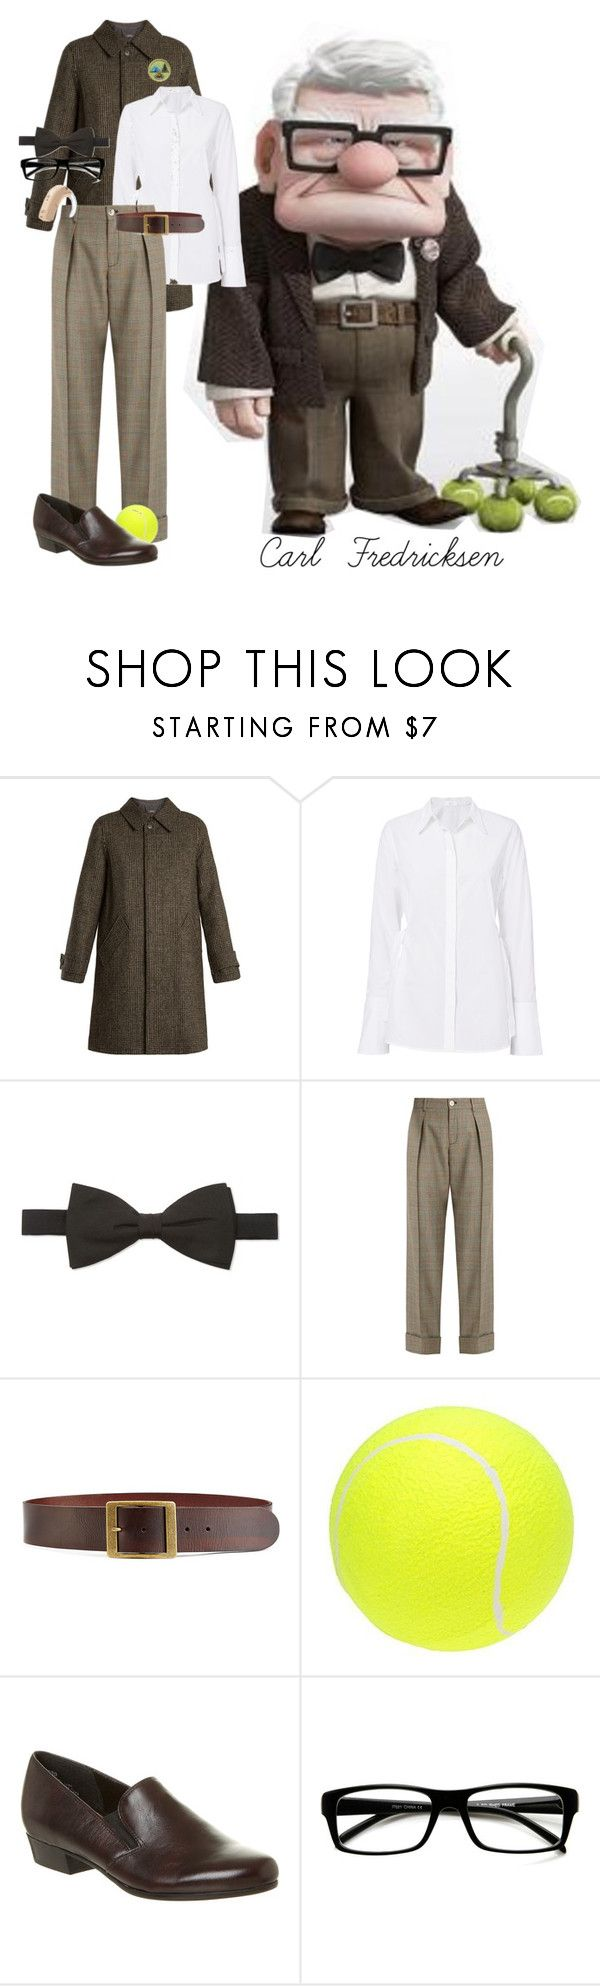 """Carl Fredricksen"" by allyssister ❤ liked on Polyvore featuring A.P.C., Gieves & Hawkes, Gucci, Frame, Munro American and ZeroUV"